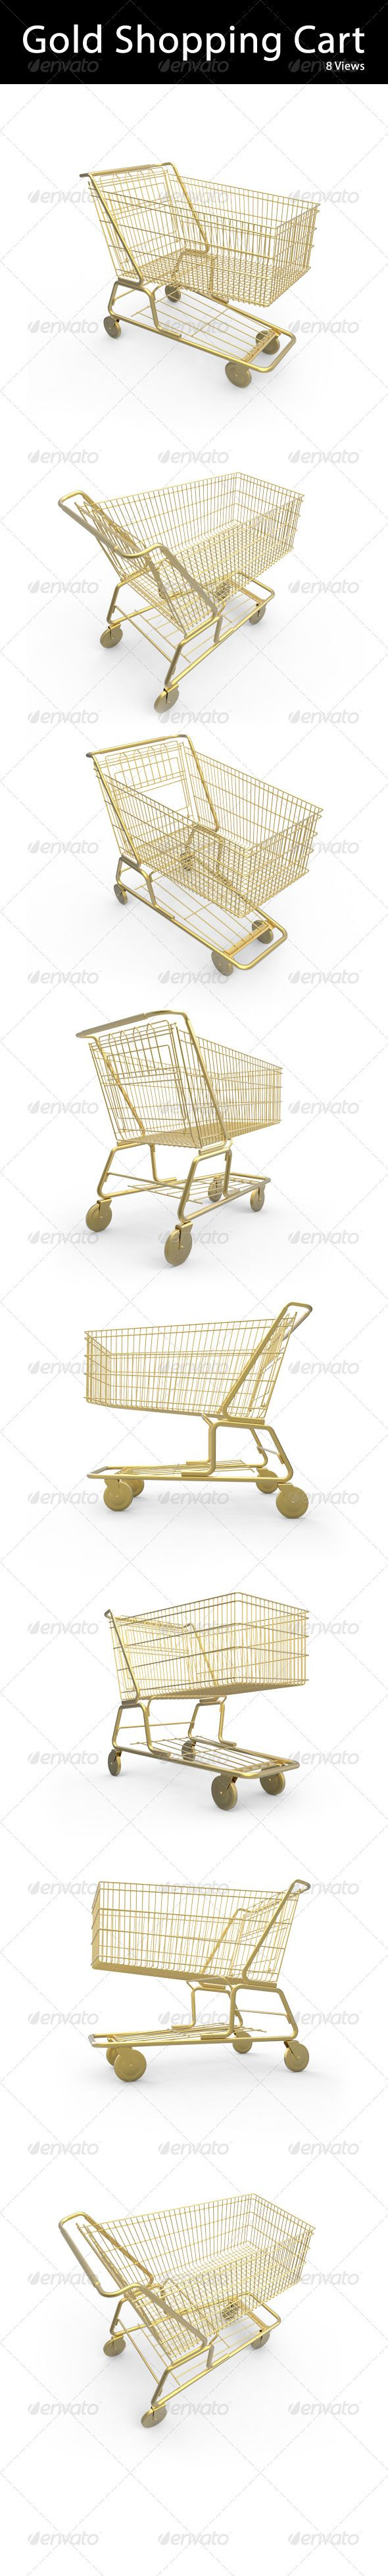 A shopping cart made of gold and isolated on white. 3400x3400px Resolution in 100 transparent background.